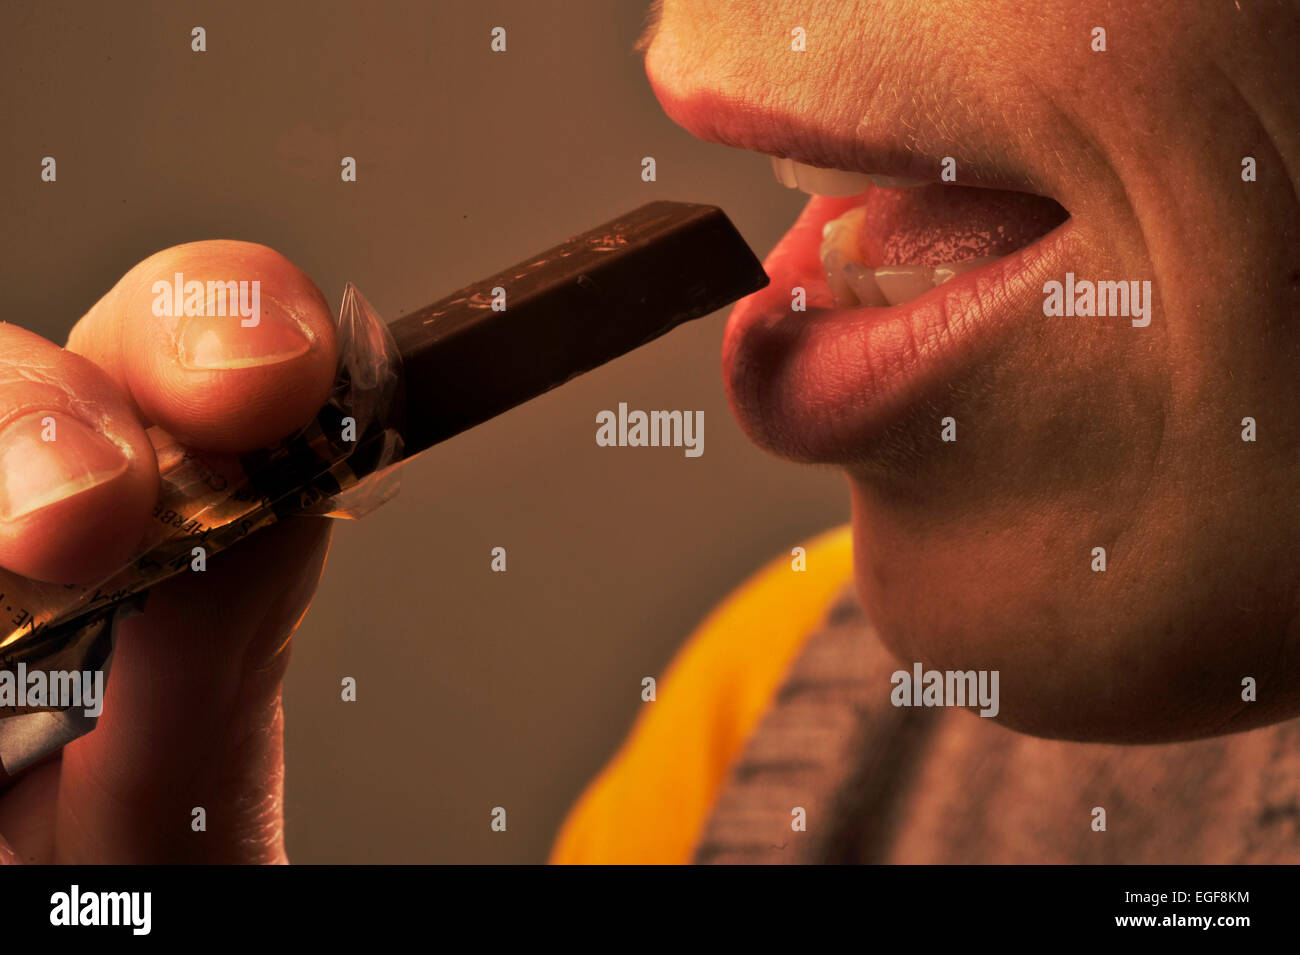 Symbolic picture about sugar in foods: Woman eating chocolate. - Stock Image